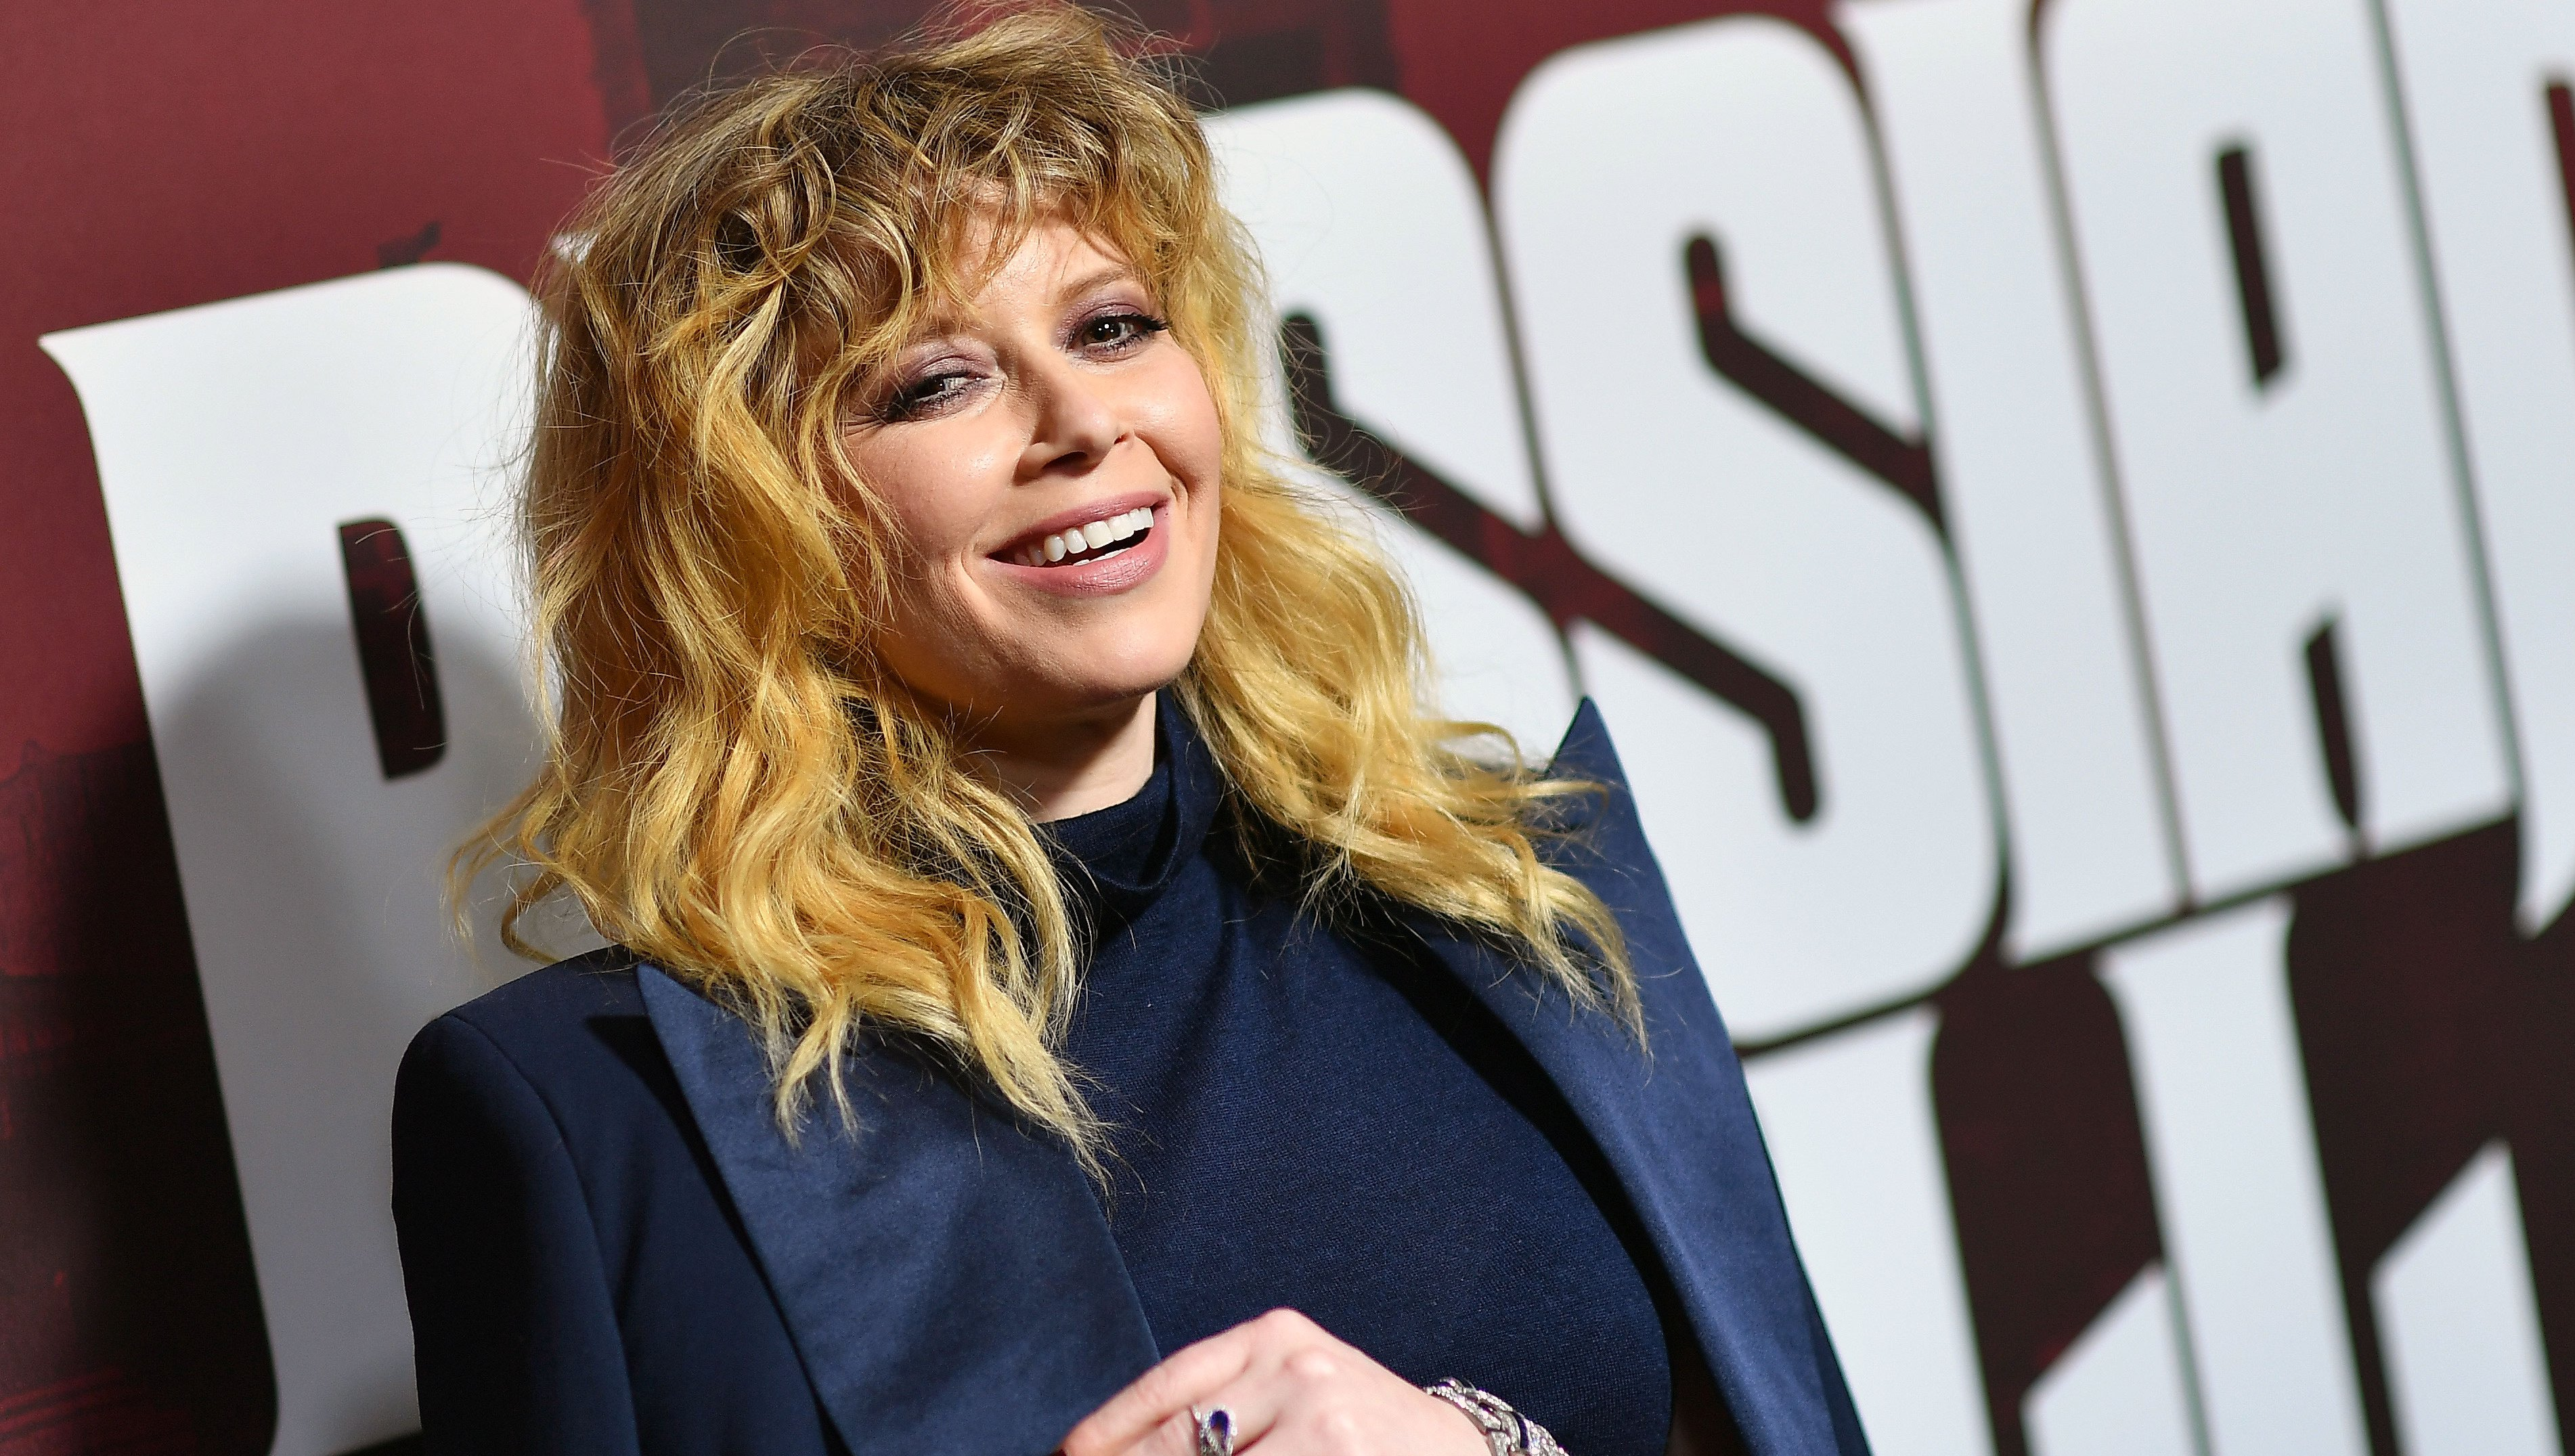 Natasha Lyonne Reveals Inspiration Behind New Show 'Russian dolls'